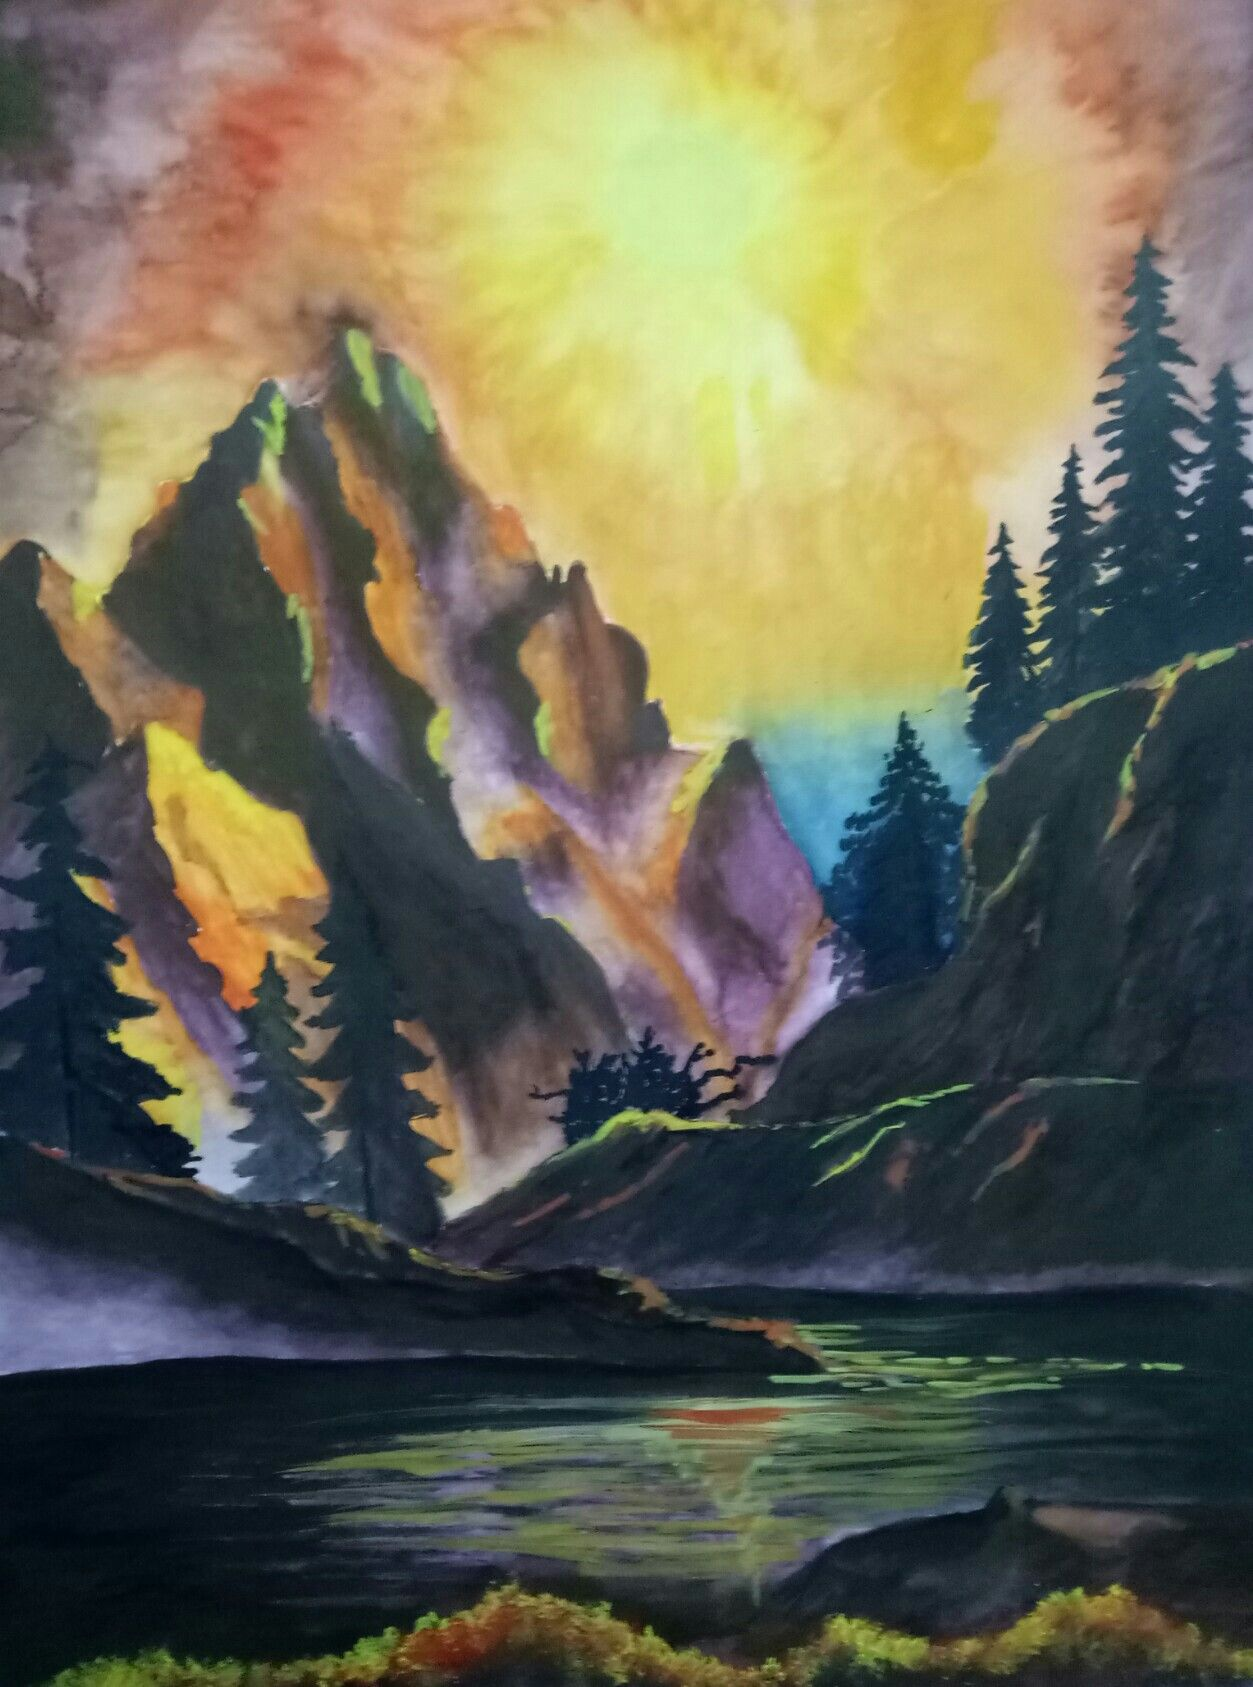 Landscape painting made by me